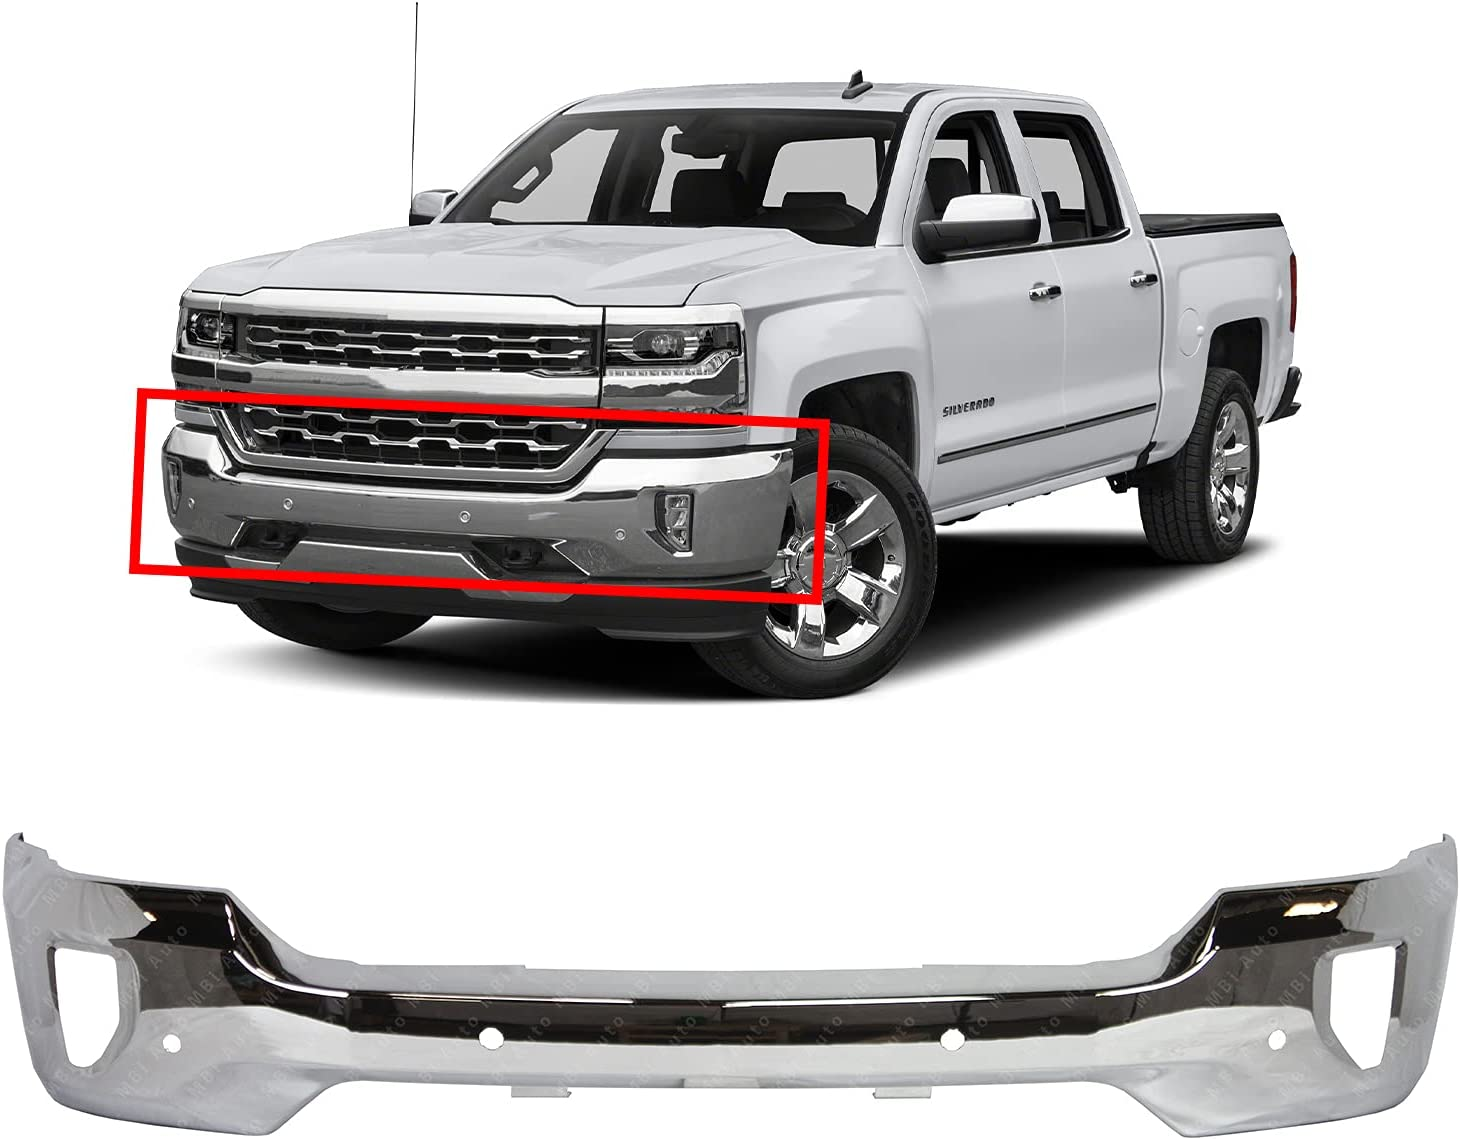 Buy Bumpers That Deliver Chrome Steel Front Bumper Face Bar Compatible With 2016 2018 Chevy Silverado 1500 W Fog Park Assist 16 18 Gm1002862 Online In Indonesia B07yq47pdt